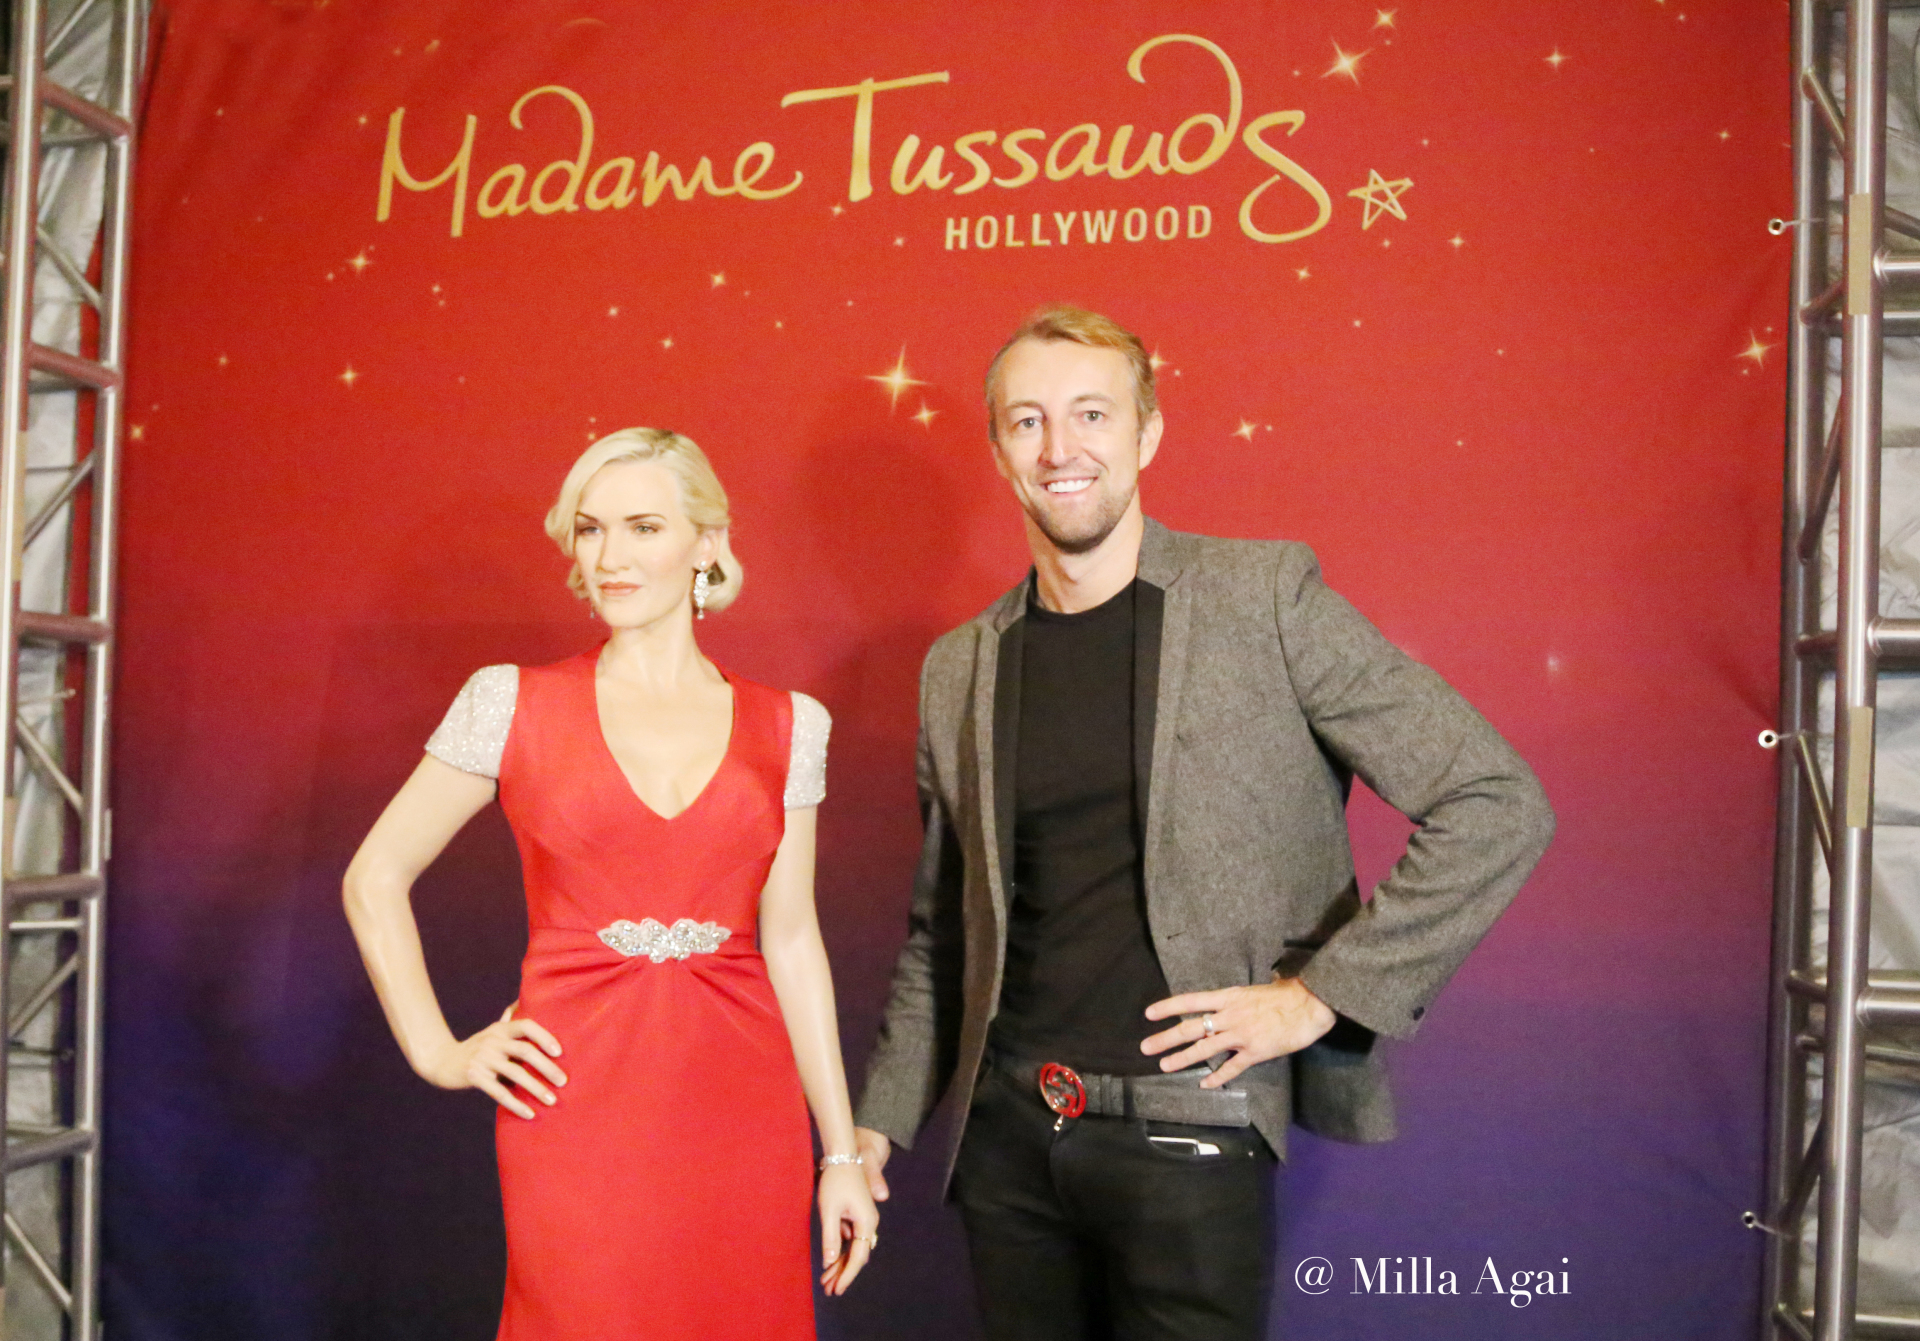 Mario-Max Prinz Zu Schaumburg-Lippe at Kate Winslet's Wax Figure at Madame Tussauds.